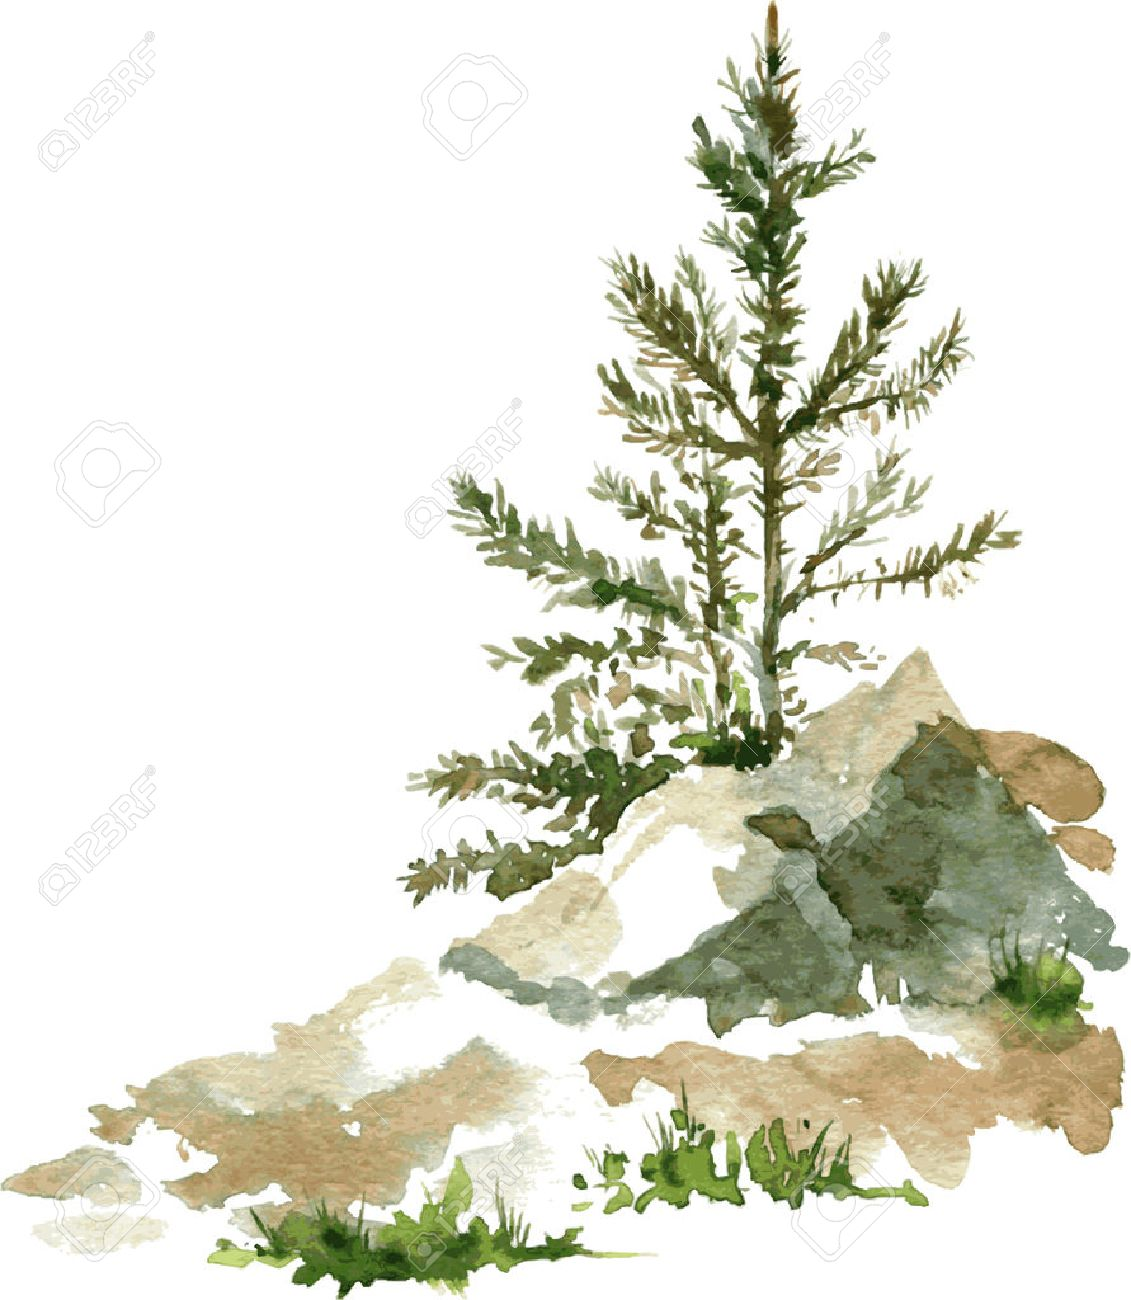 Young Pine Trees And Rocks Drawing By Watercolor, Aquarelle Sketch ... for Tree Drawing With Watercolor  56bof